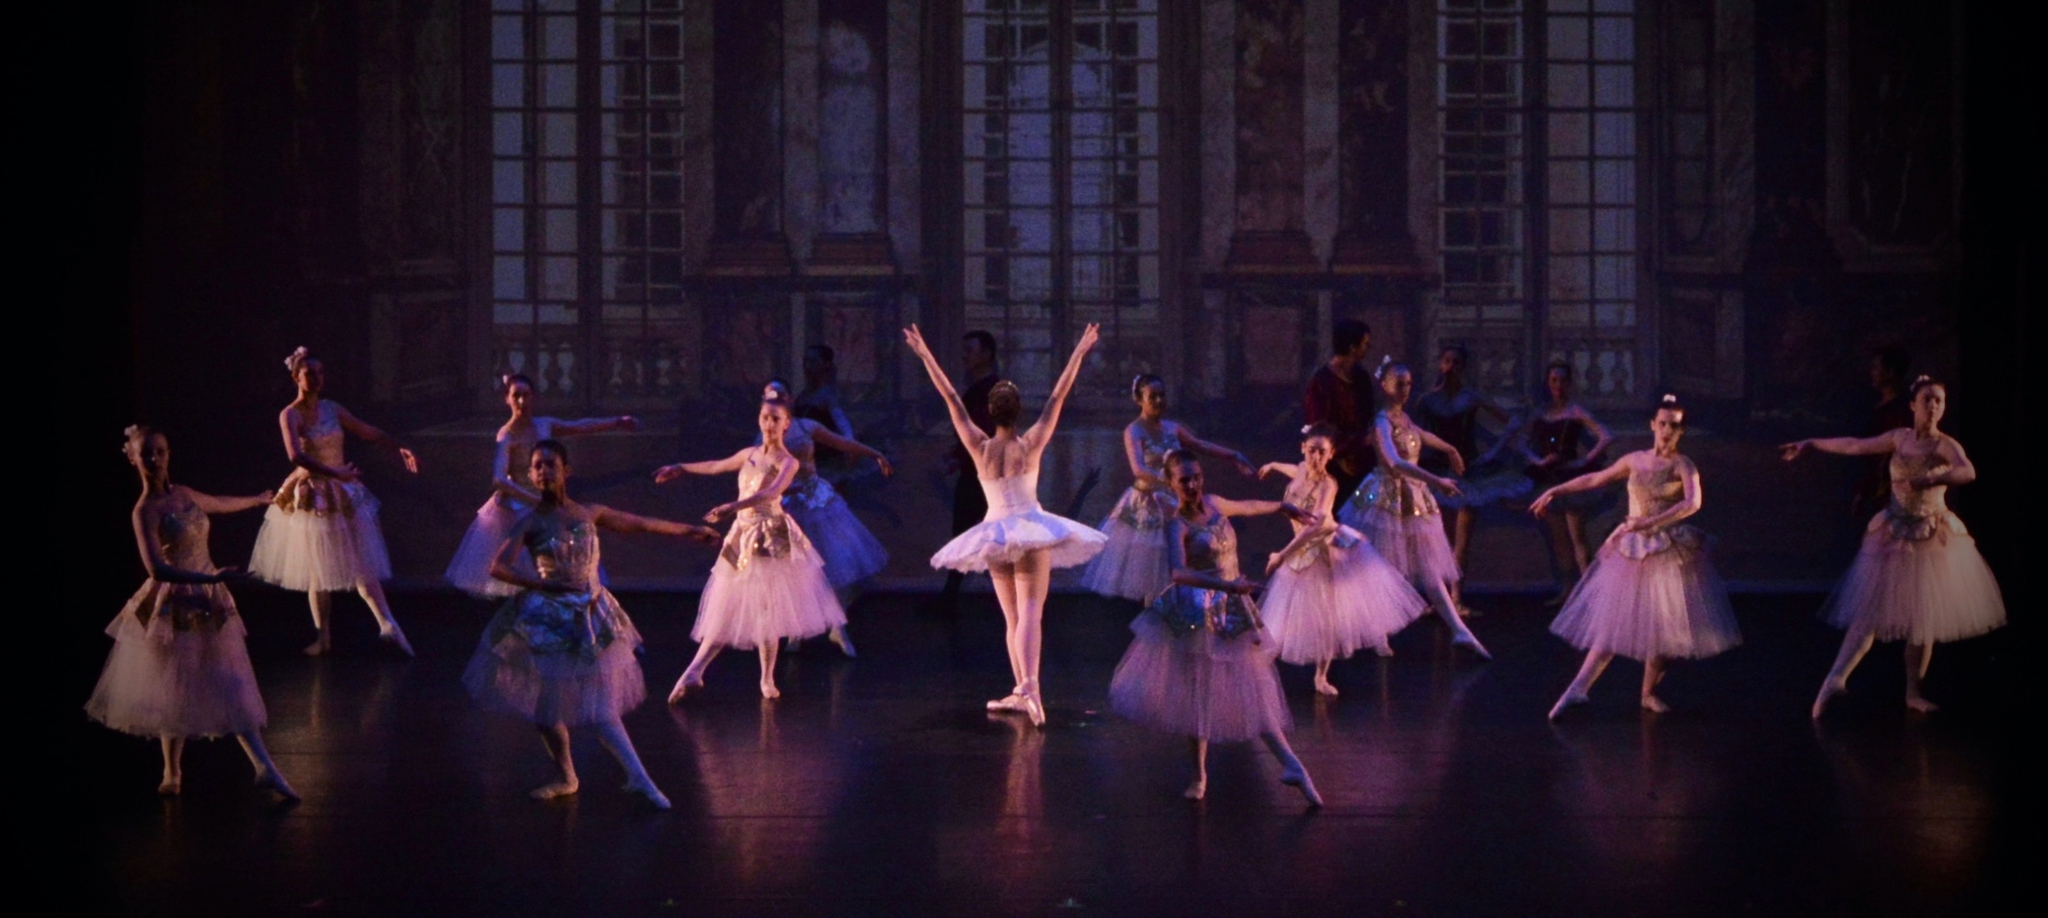 University Ballet Of Chicago